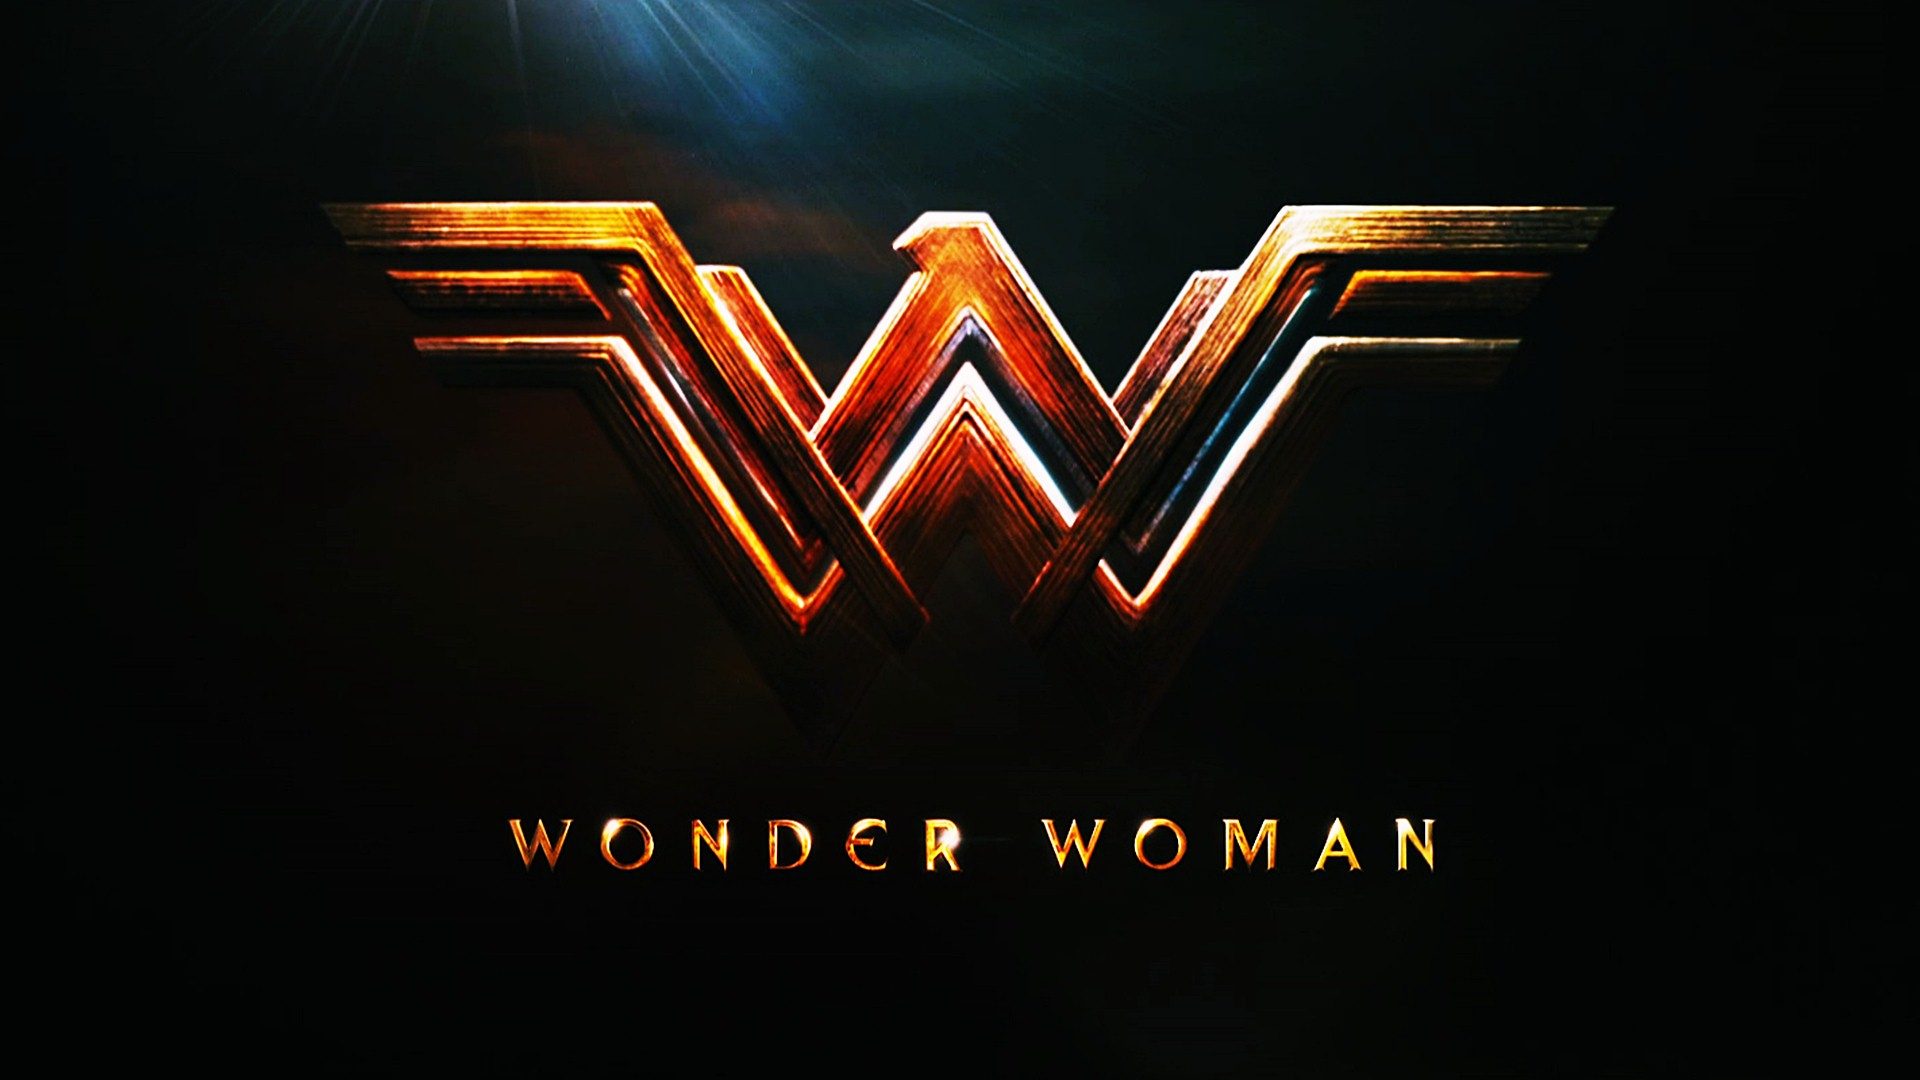 Wonder Woman Logo Wallpaper Wallpapersafari